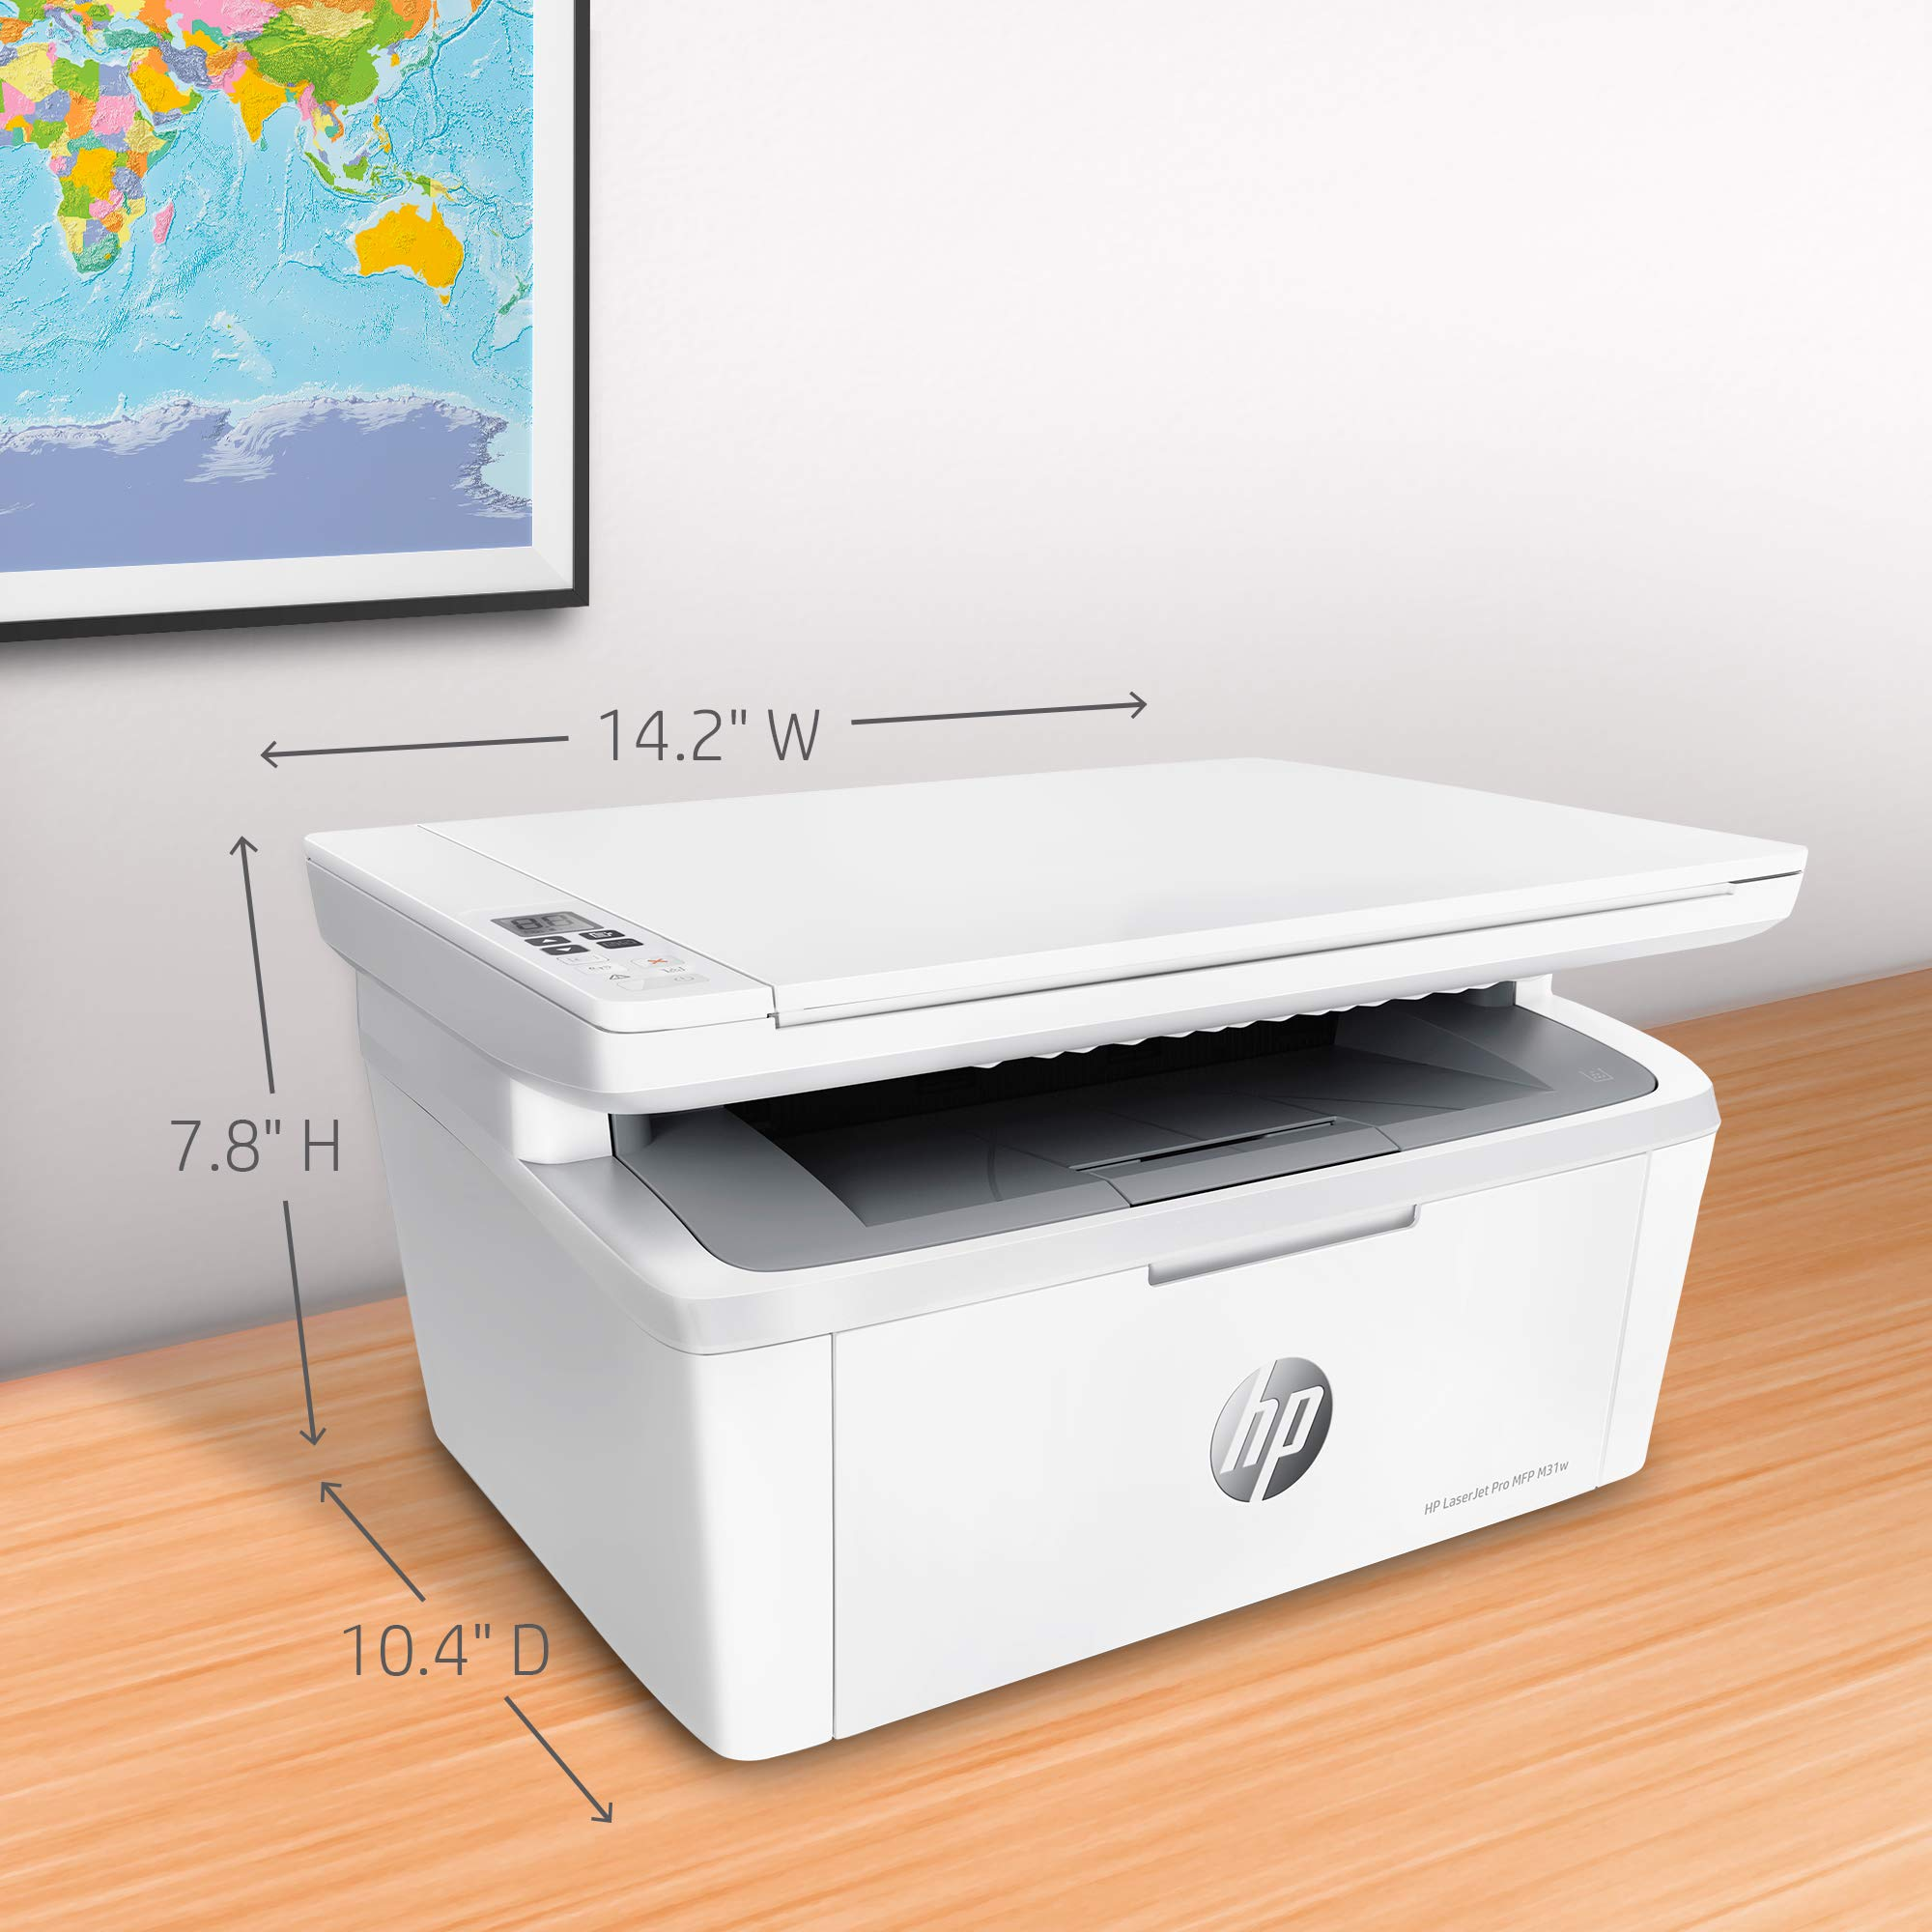 HP Laserjet Pro M31w All-in-One Wireless Monochrome Laser Printer with Mobile Printing (Y5S55A) by HP (Image #4)